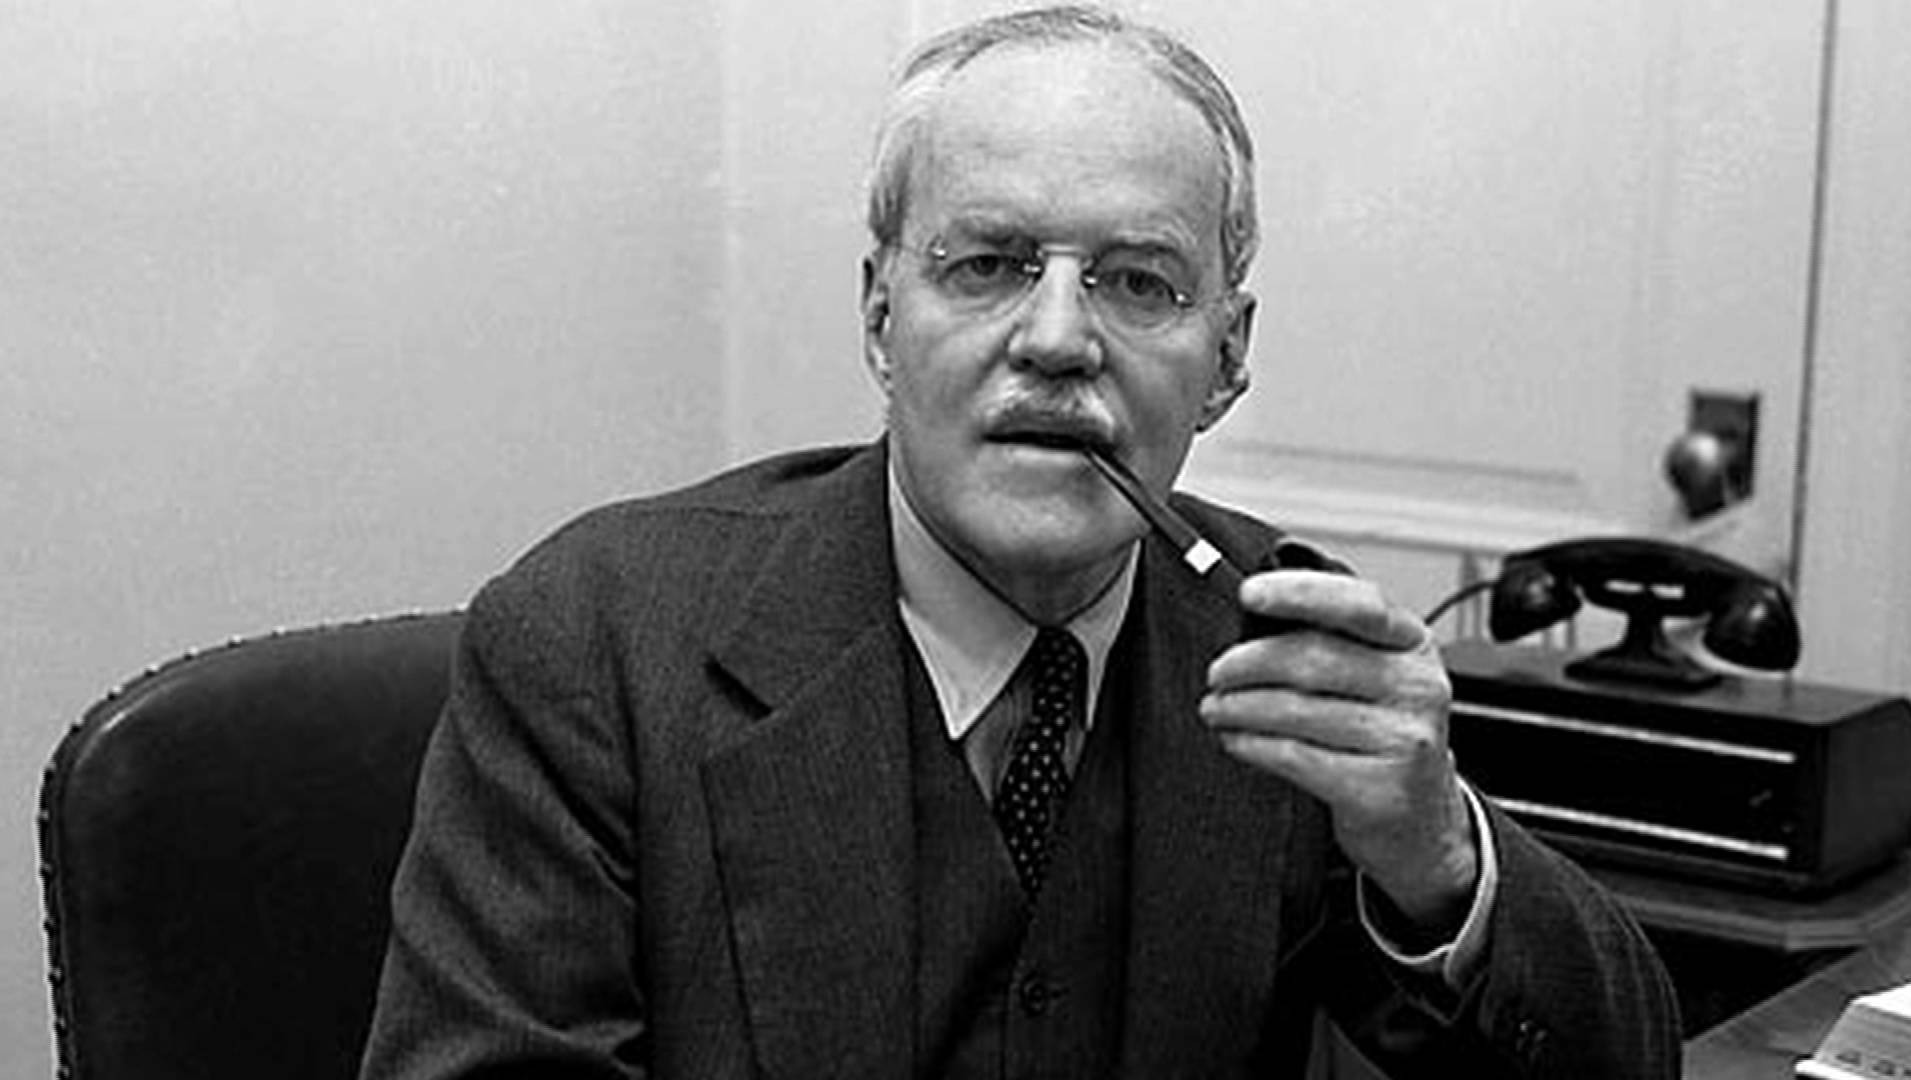 The then CIA director Allen W. Dulles